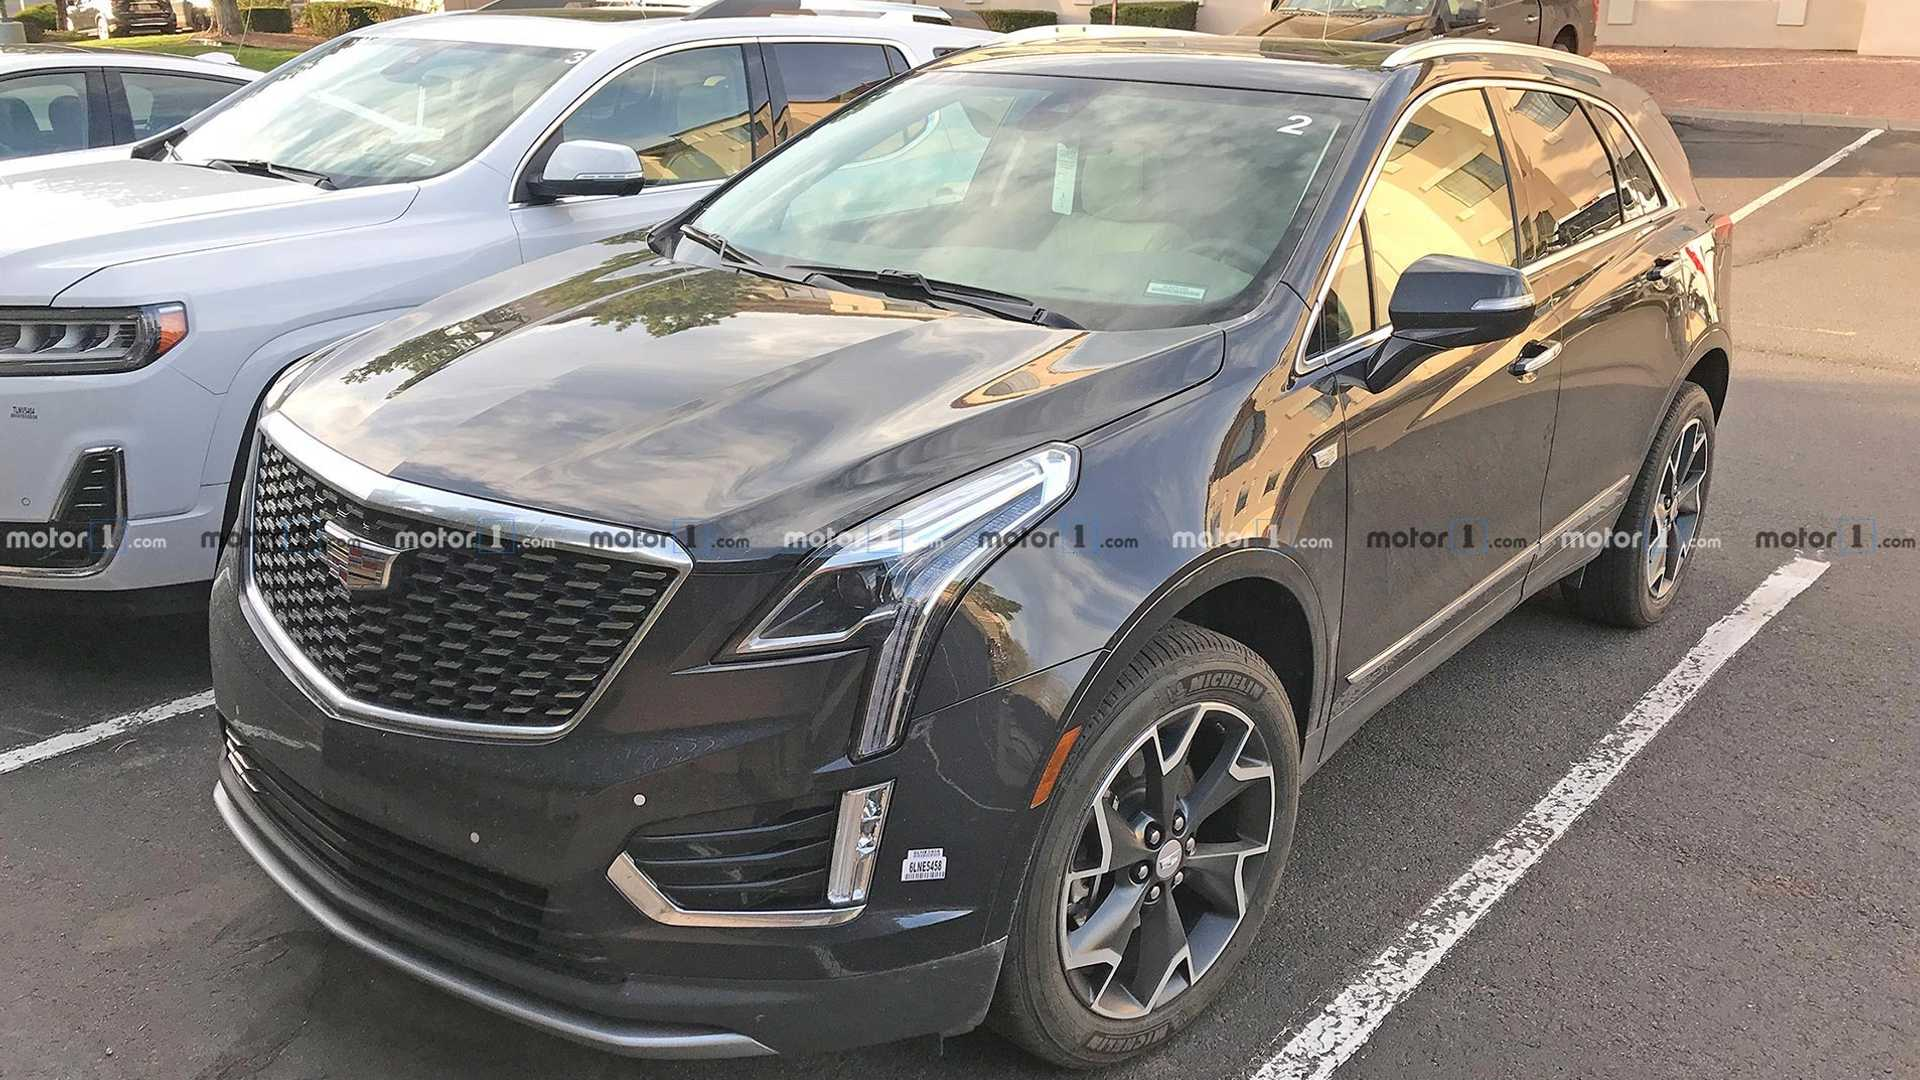 91 The Best 2020 Spy Shots Cadillac Xt5 Price